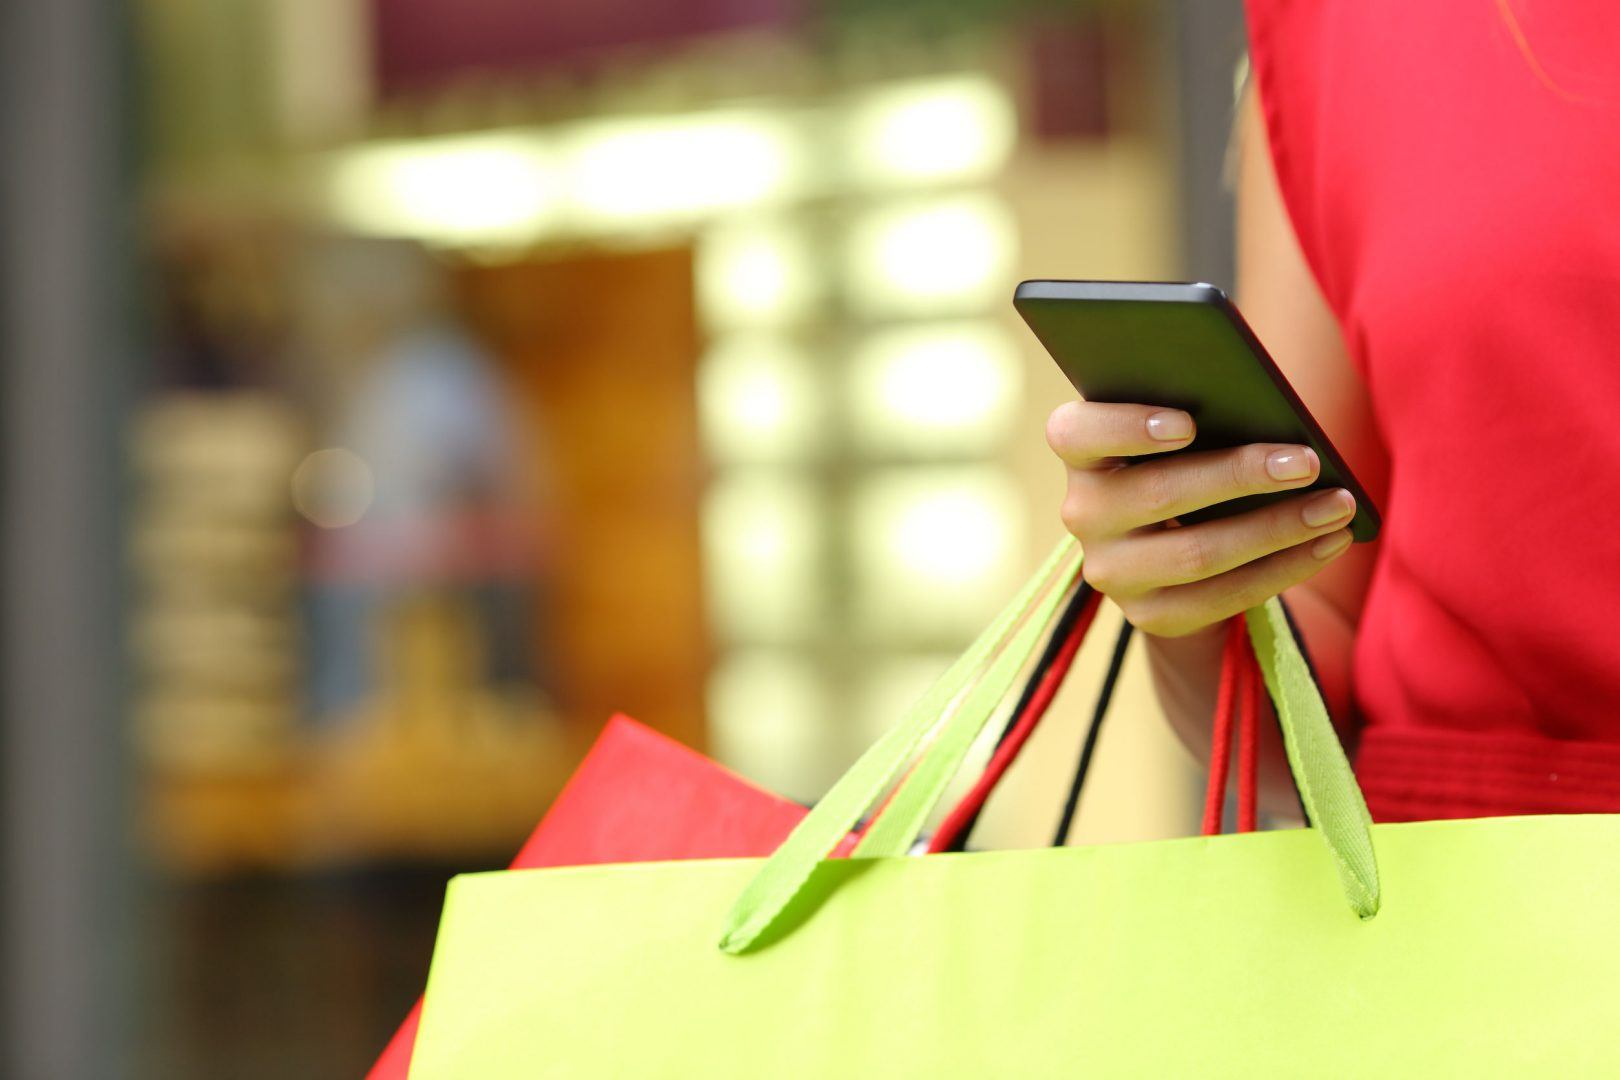 US retailing affected by digital retail revolution